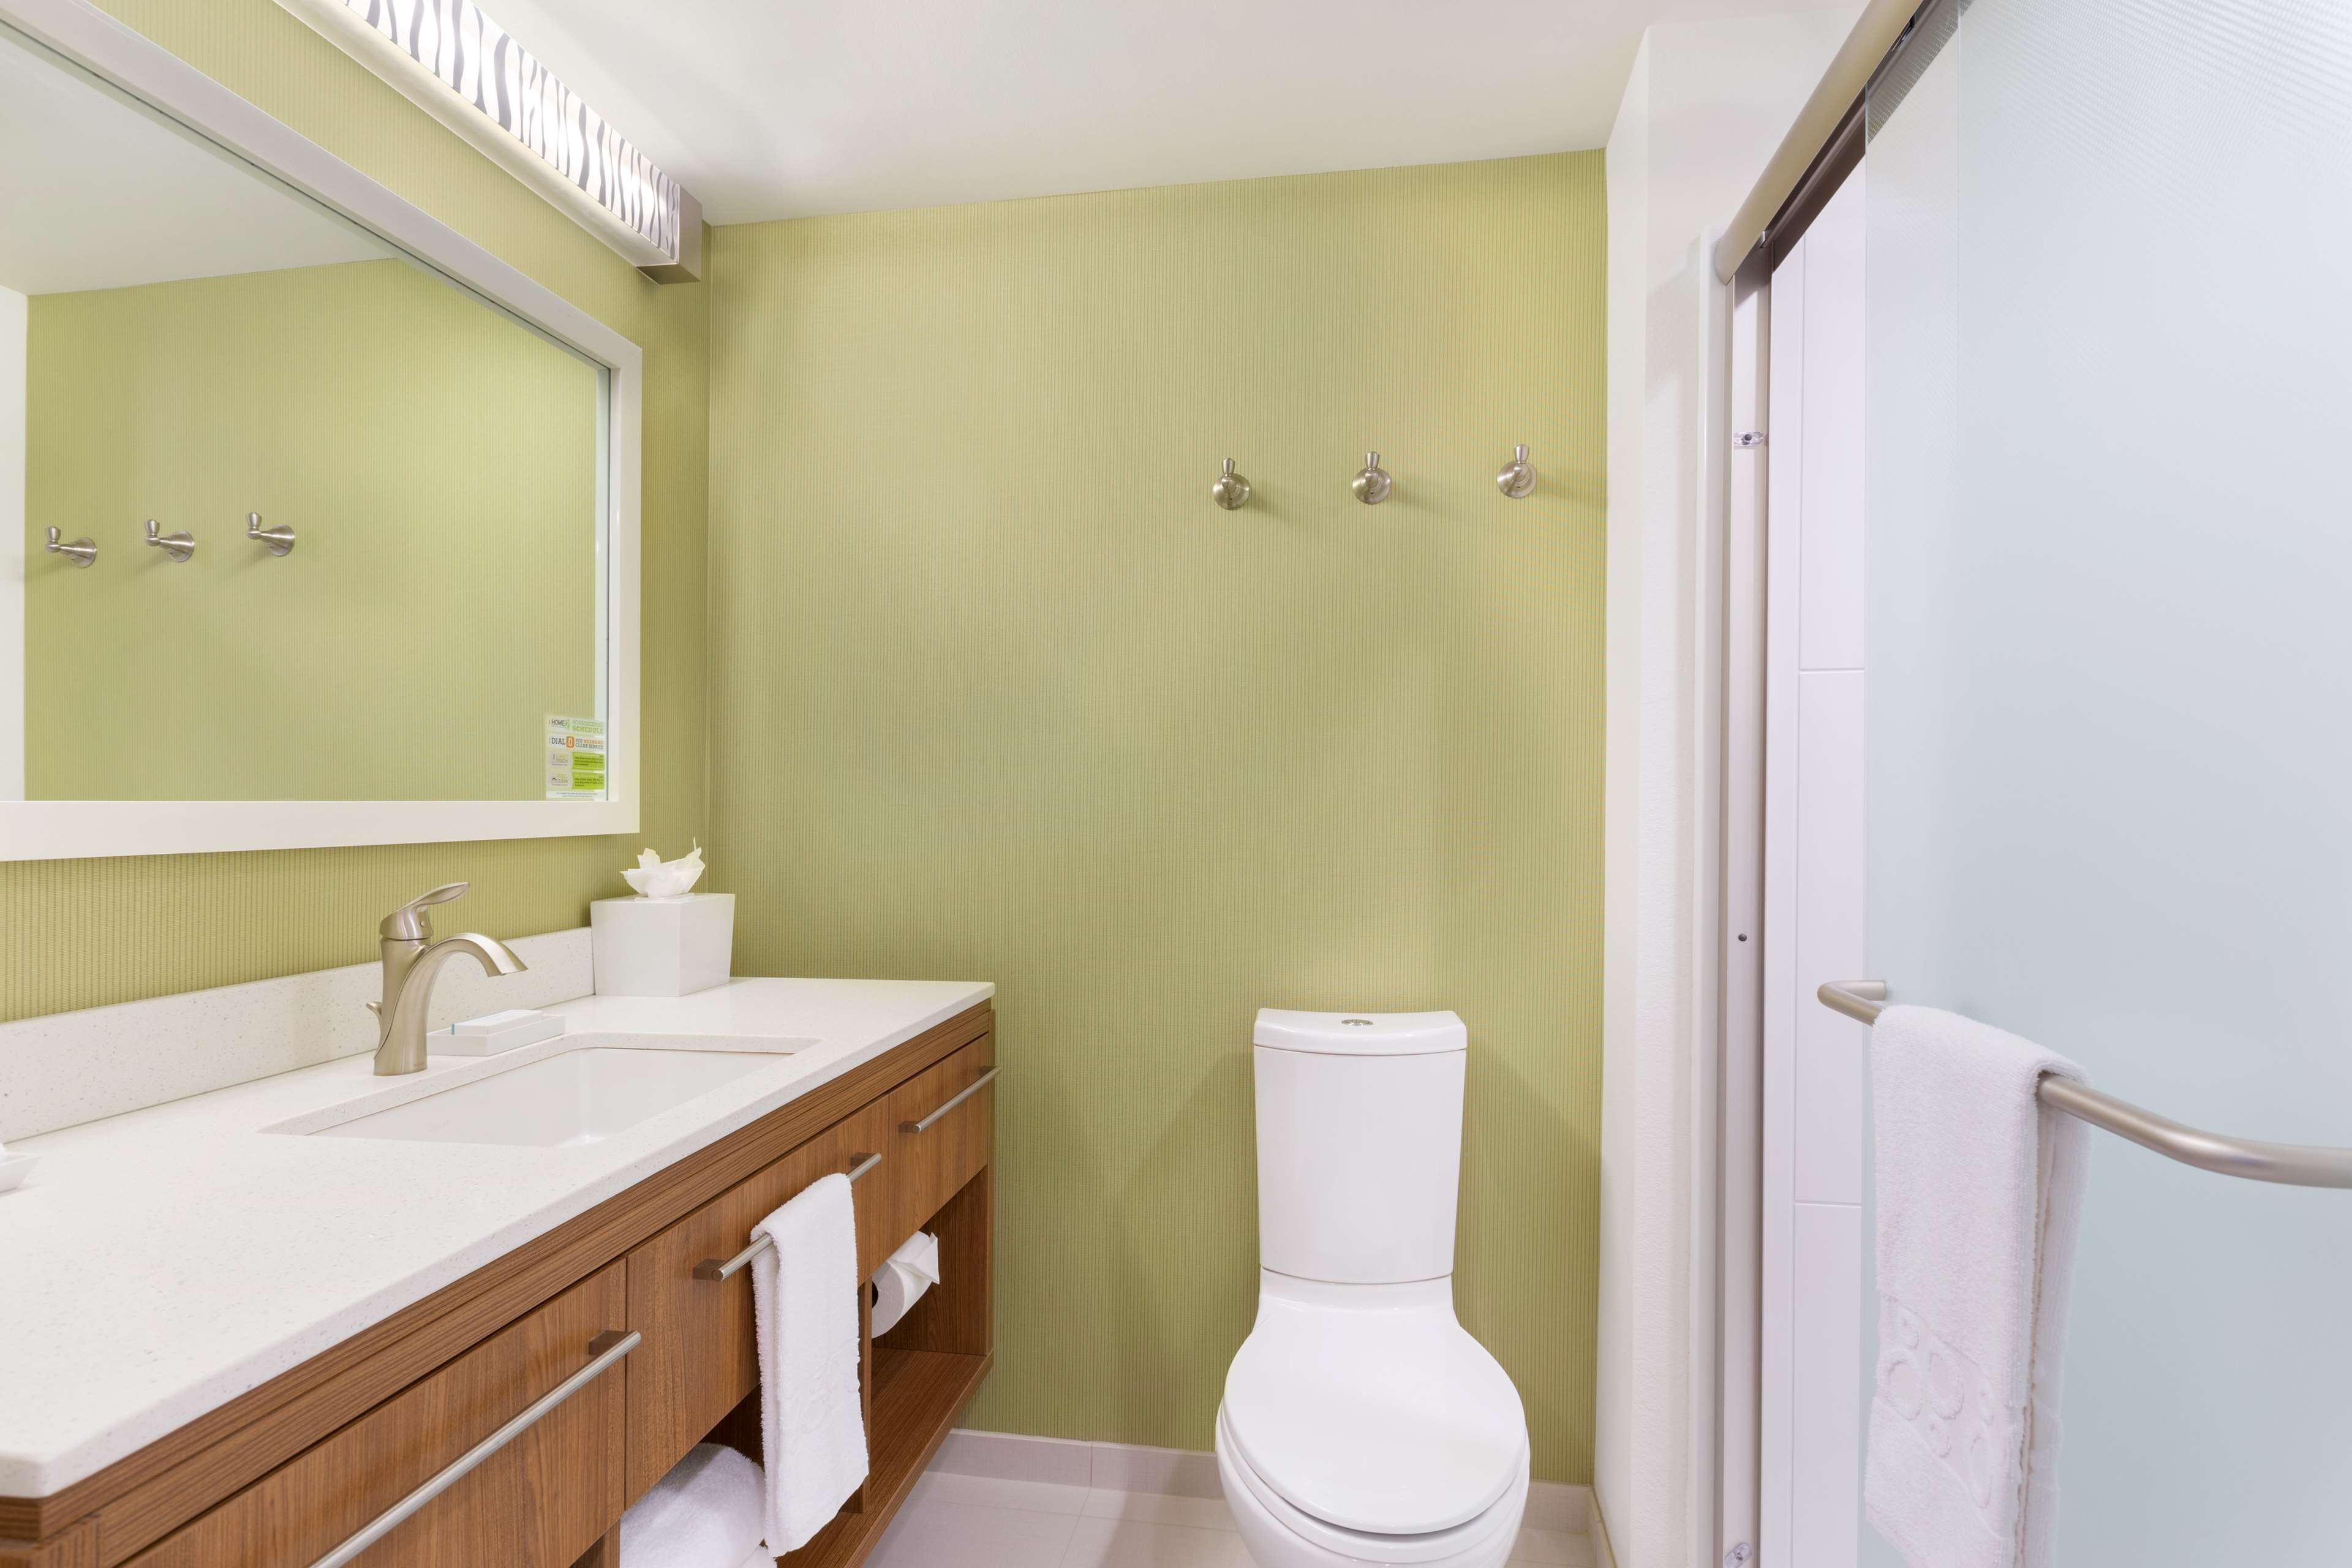 Home2 Suites By Hilton Youngstown West - Austintown image 13